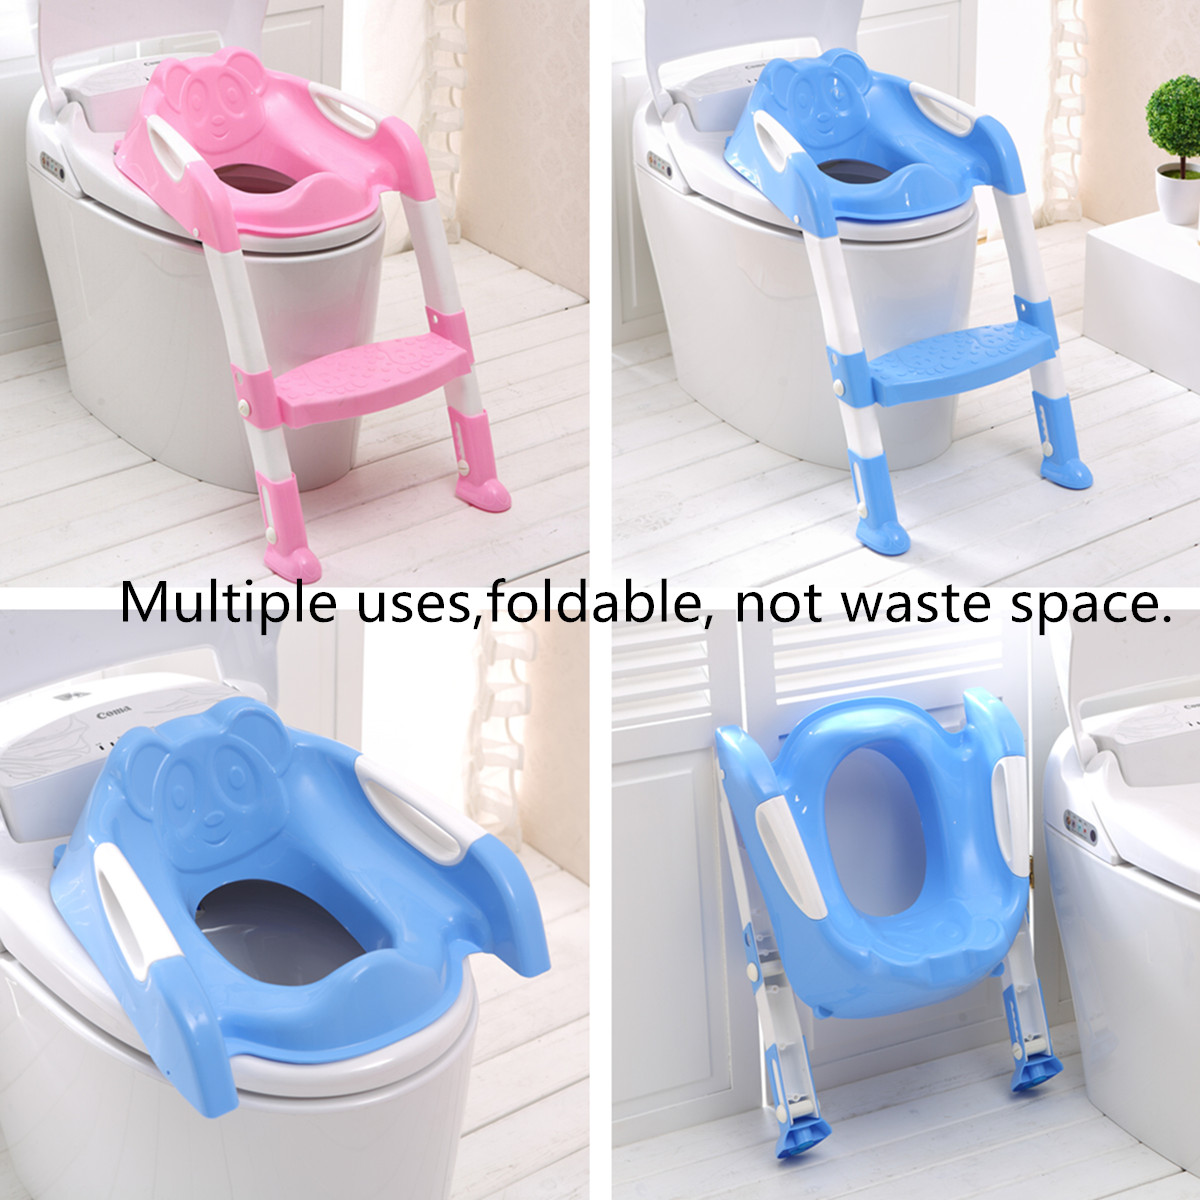 Baby Toddler Kids Potty Toilet Training Safety Adjustable Ladder Seat Chair Step Alexnld Com - Potty Toilet